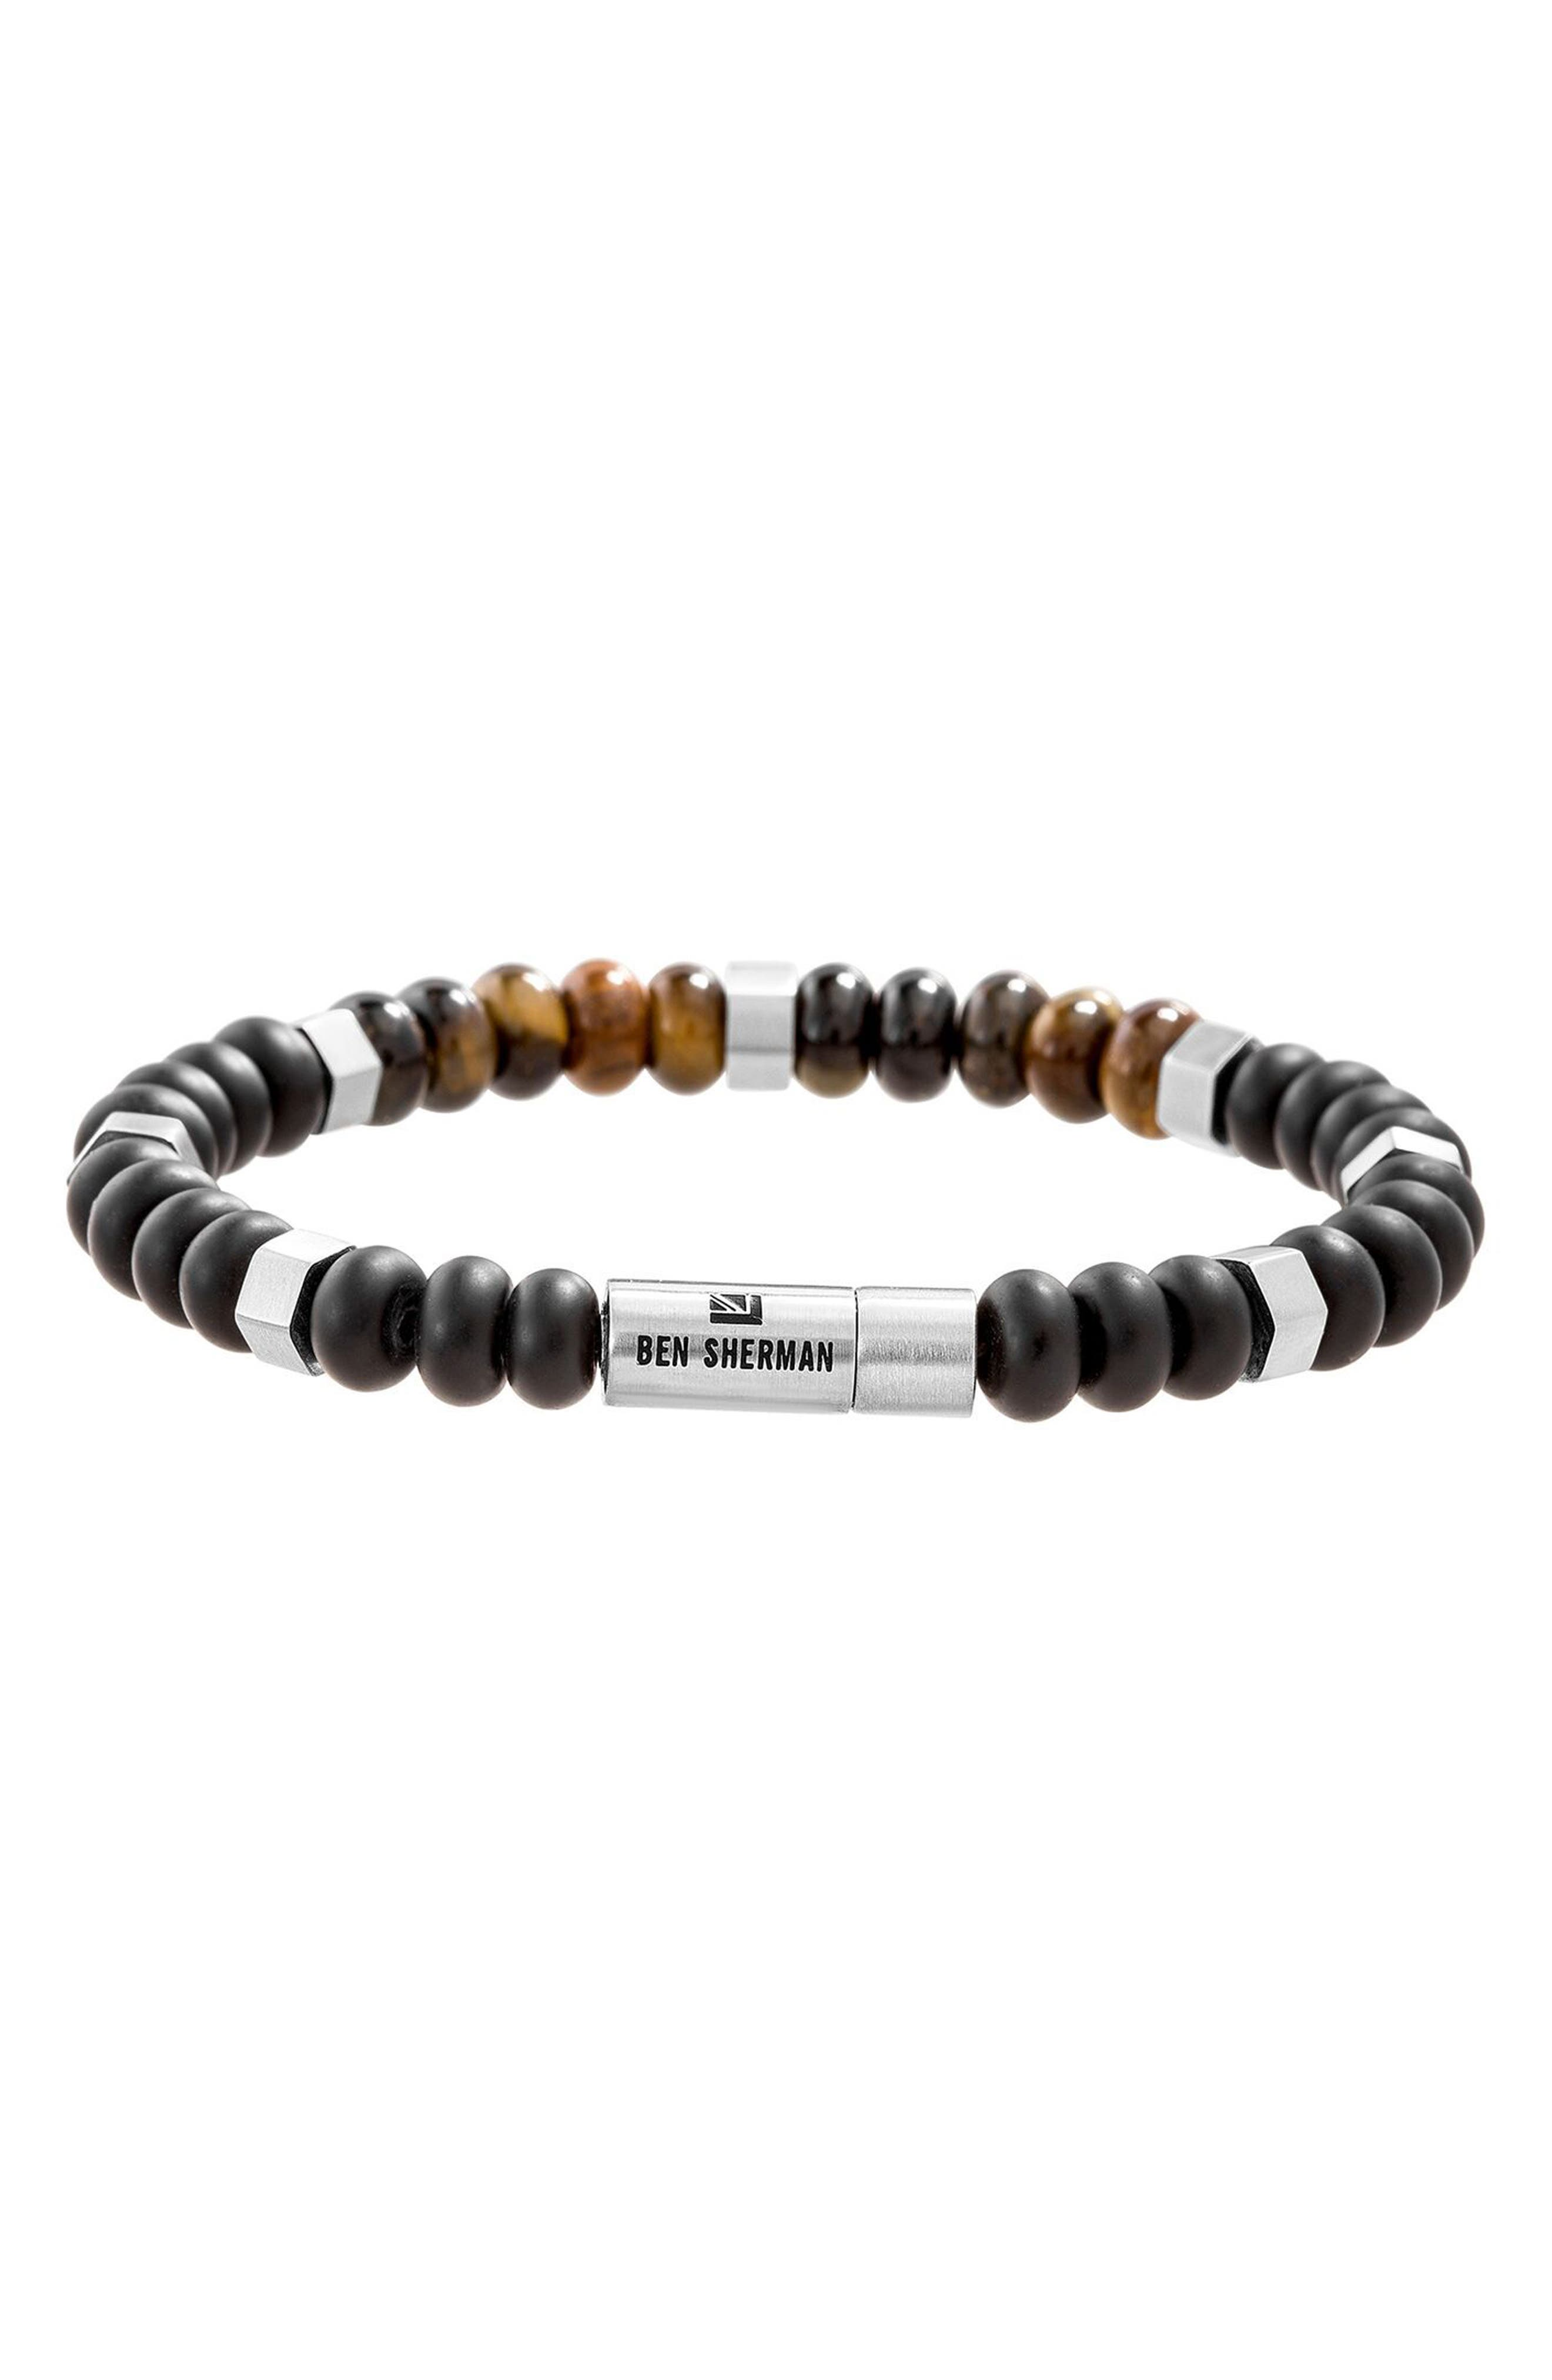 Ben Sherman Tiger's Eye Bead Bracelet